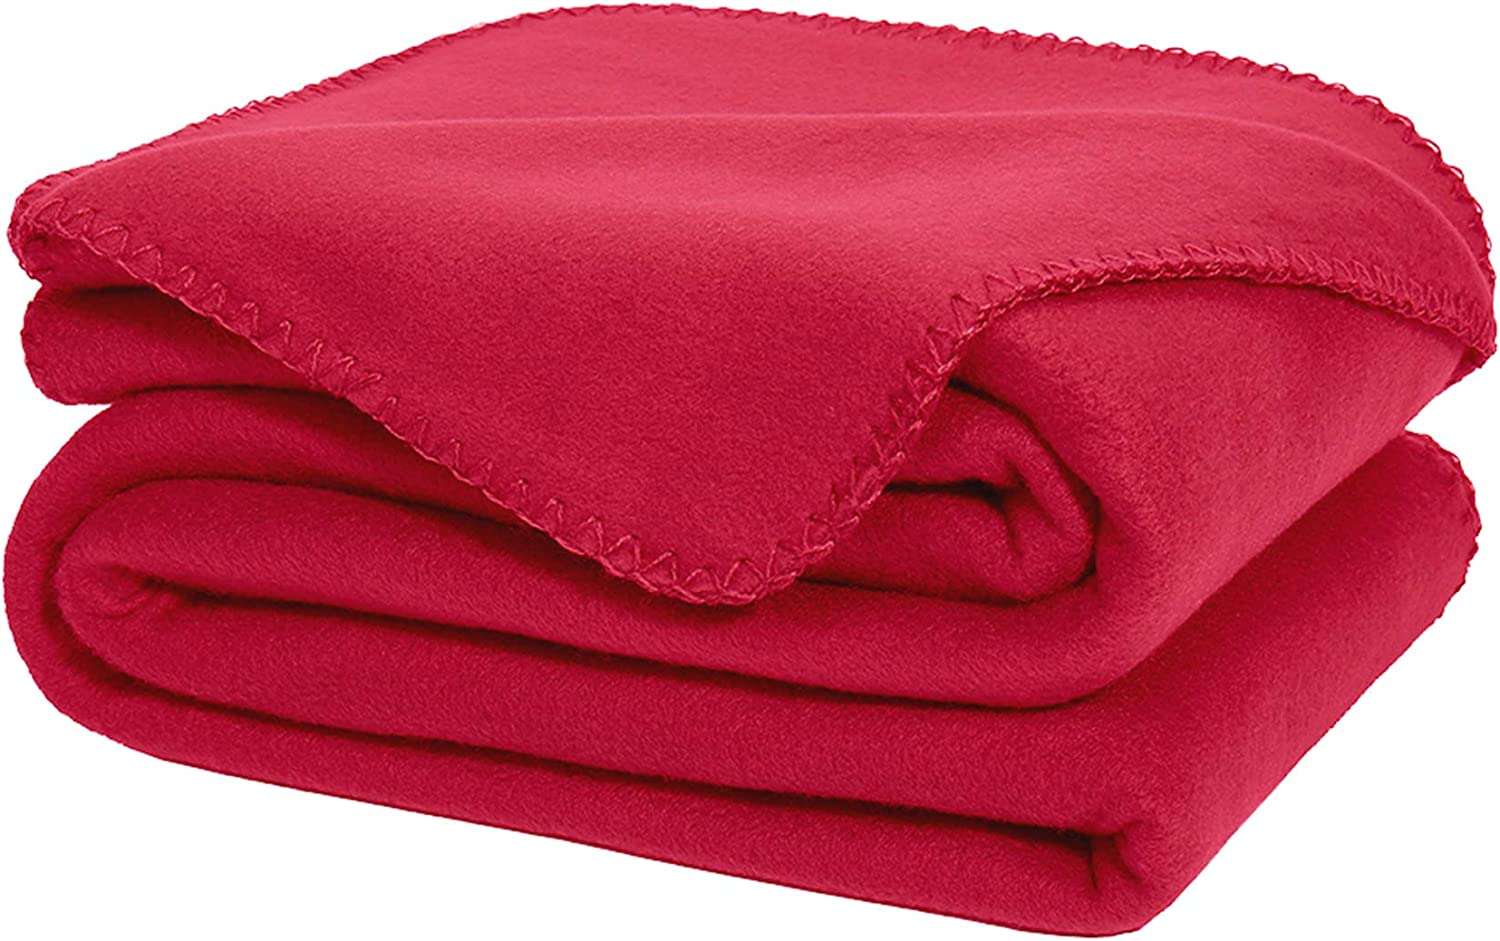 DOZZZ Oversize Flannel Polar Fleece Throw Blanket 70 x 50 Fuzzy Plush Microfiber for Couch Cover Sofa Chair Bed Bungundy Red